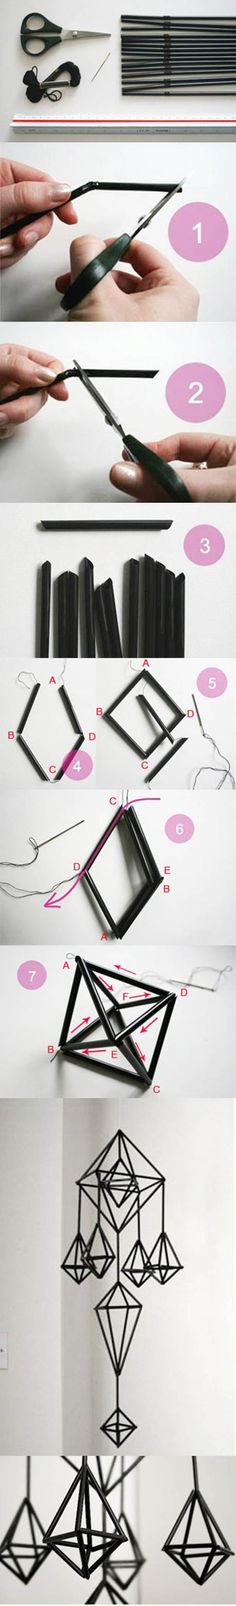 DIY Unique Hanging Decorations from Straws | iCreativeIdeas.com Like Us on Facebook ==> https://www.facebook.com/icreativeideas